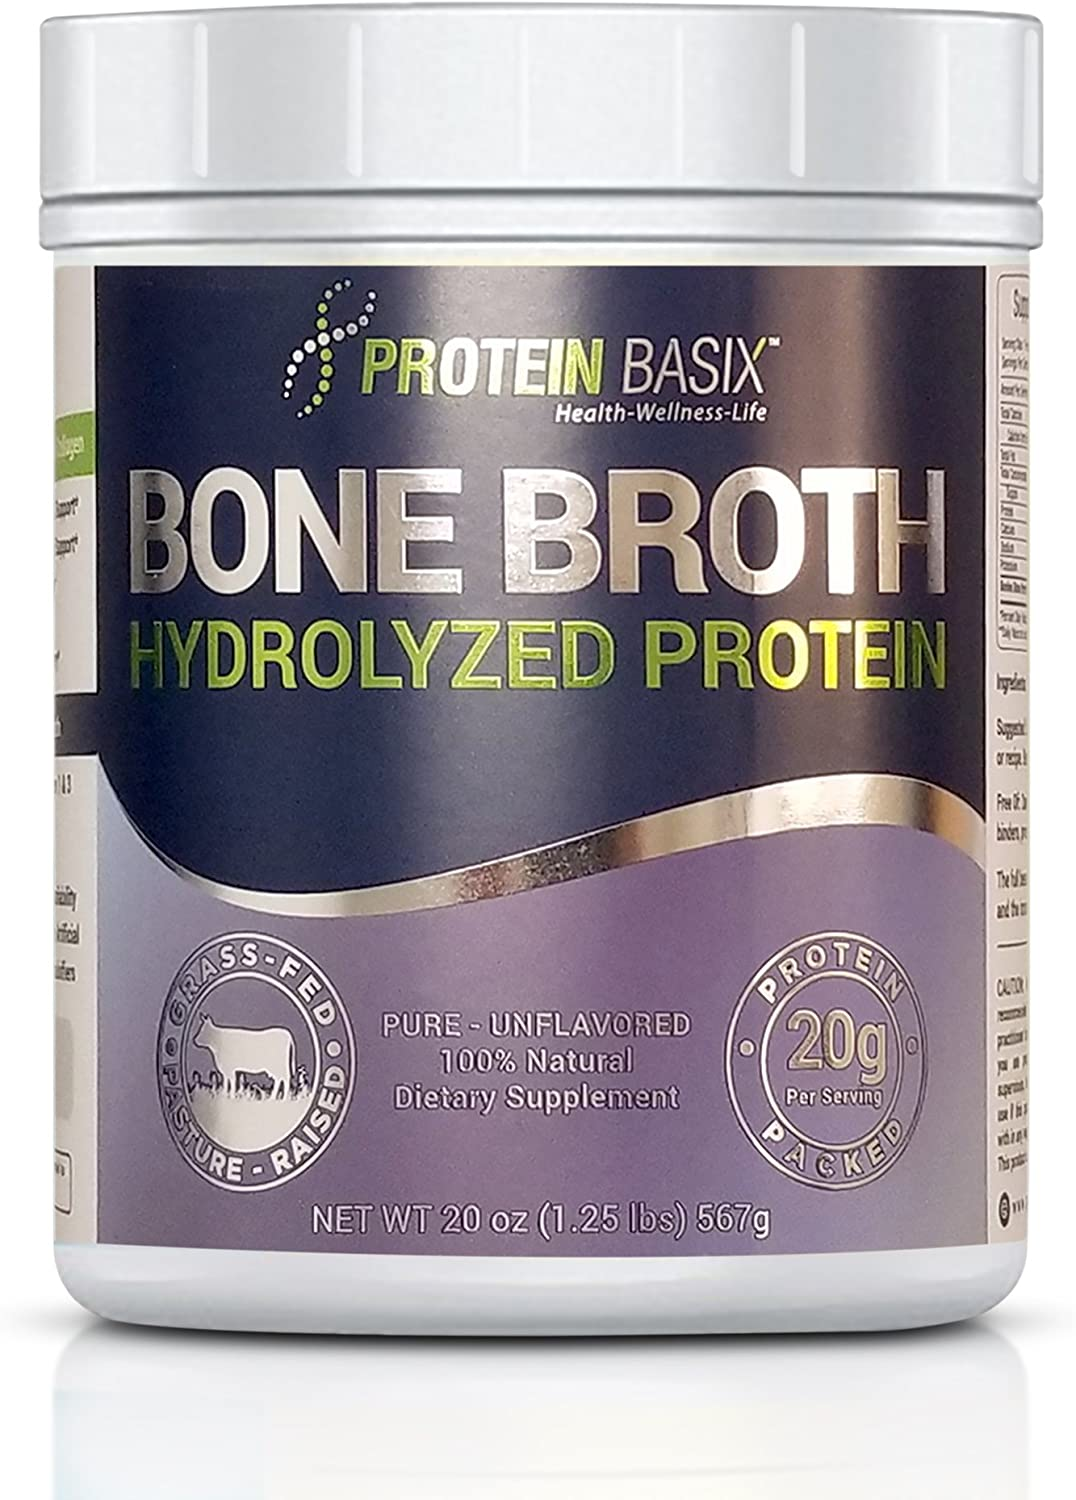 Bone Broth Protein Powder, Packed with 22.25g of Pure Premium Collagen Peptides Per Serving, 20oz. Grass Fed, Pasture Raised, Paleo Keto Friendly- No additives or Flavorings, 20oz.